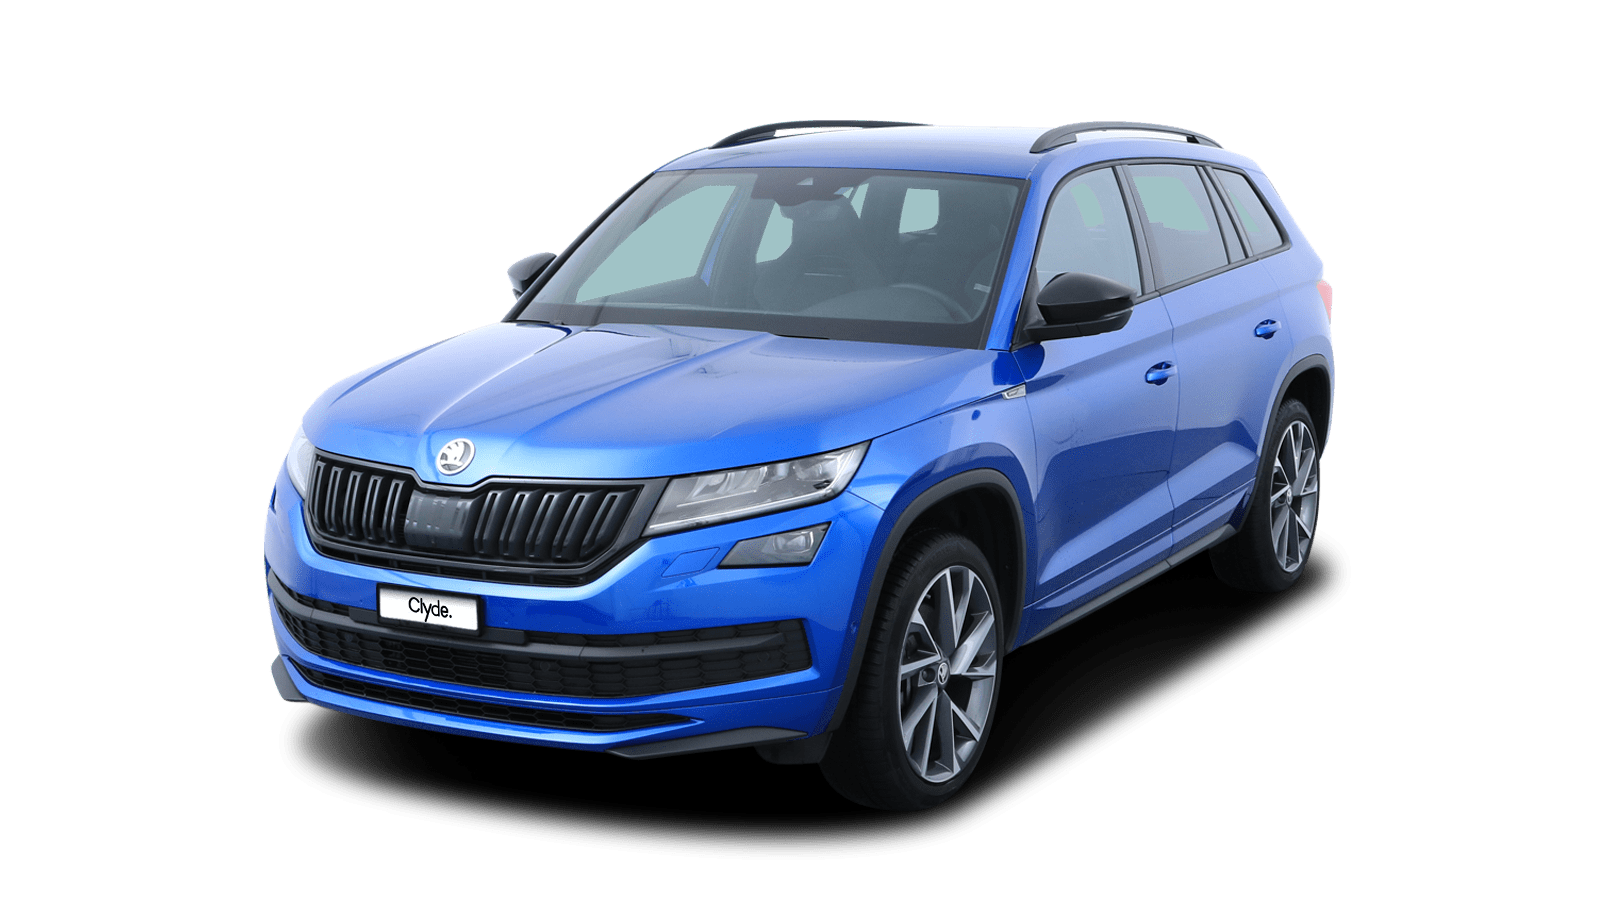 ŠKODA KODIAQ SPORTLINE Blue front - Clyde car subscription